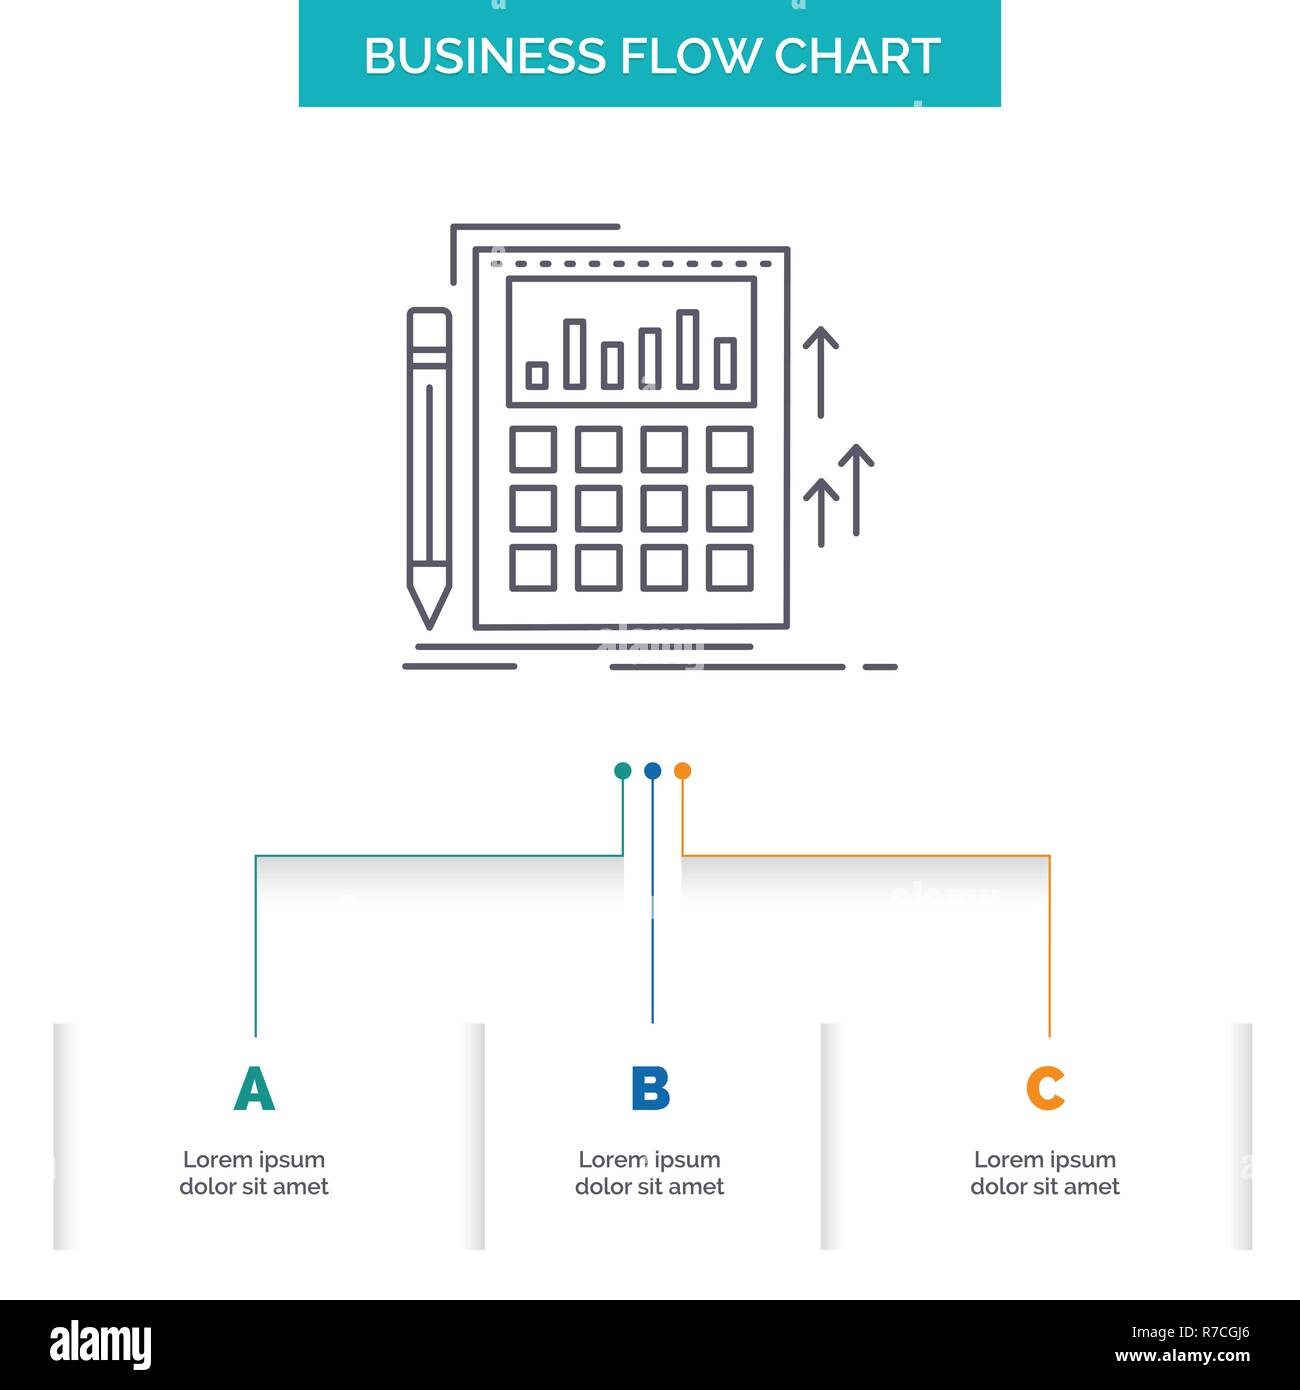 Design On Stock Bank.Accounting Audit Banking Calculation Calculator Business Flow